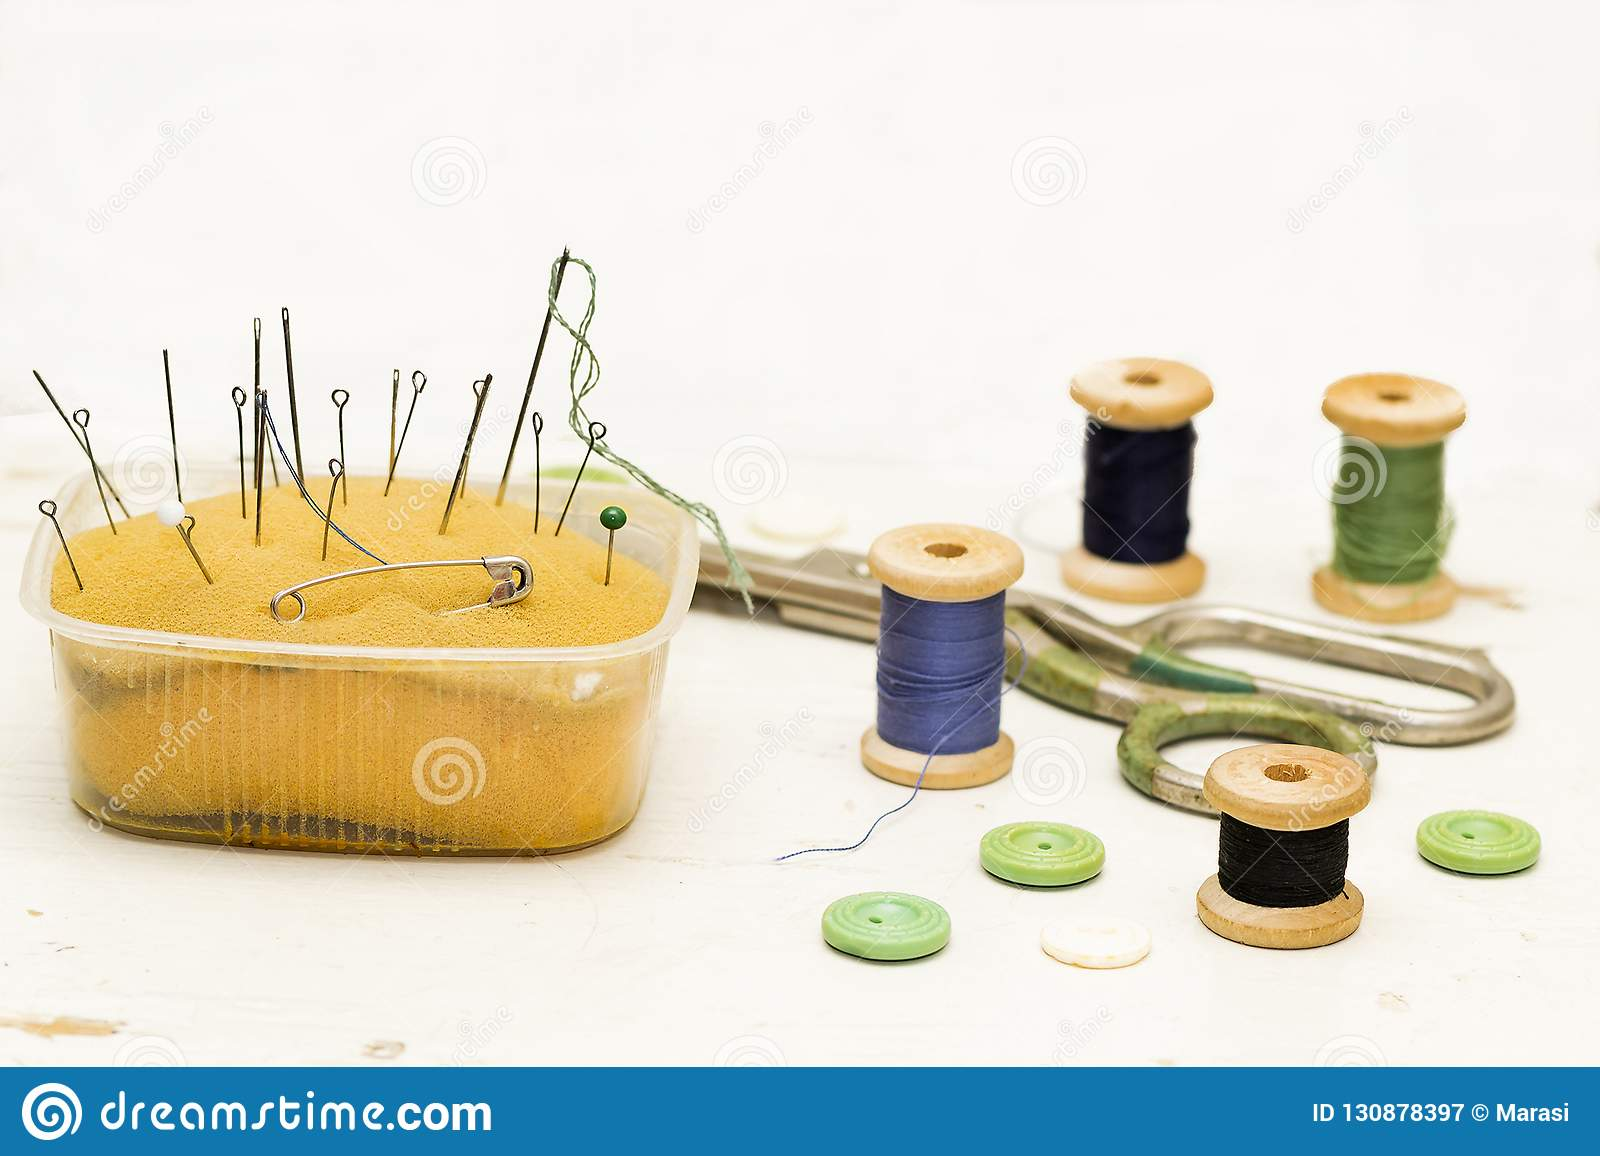 Old rusty, metal needles, pins, scissors and wooden spools of th